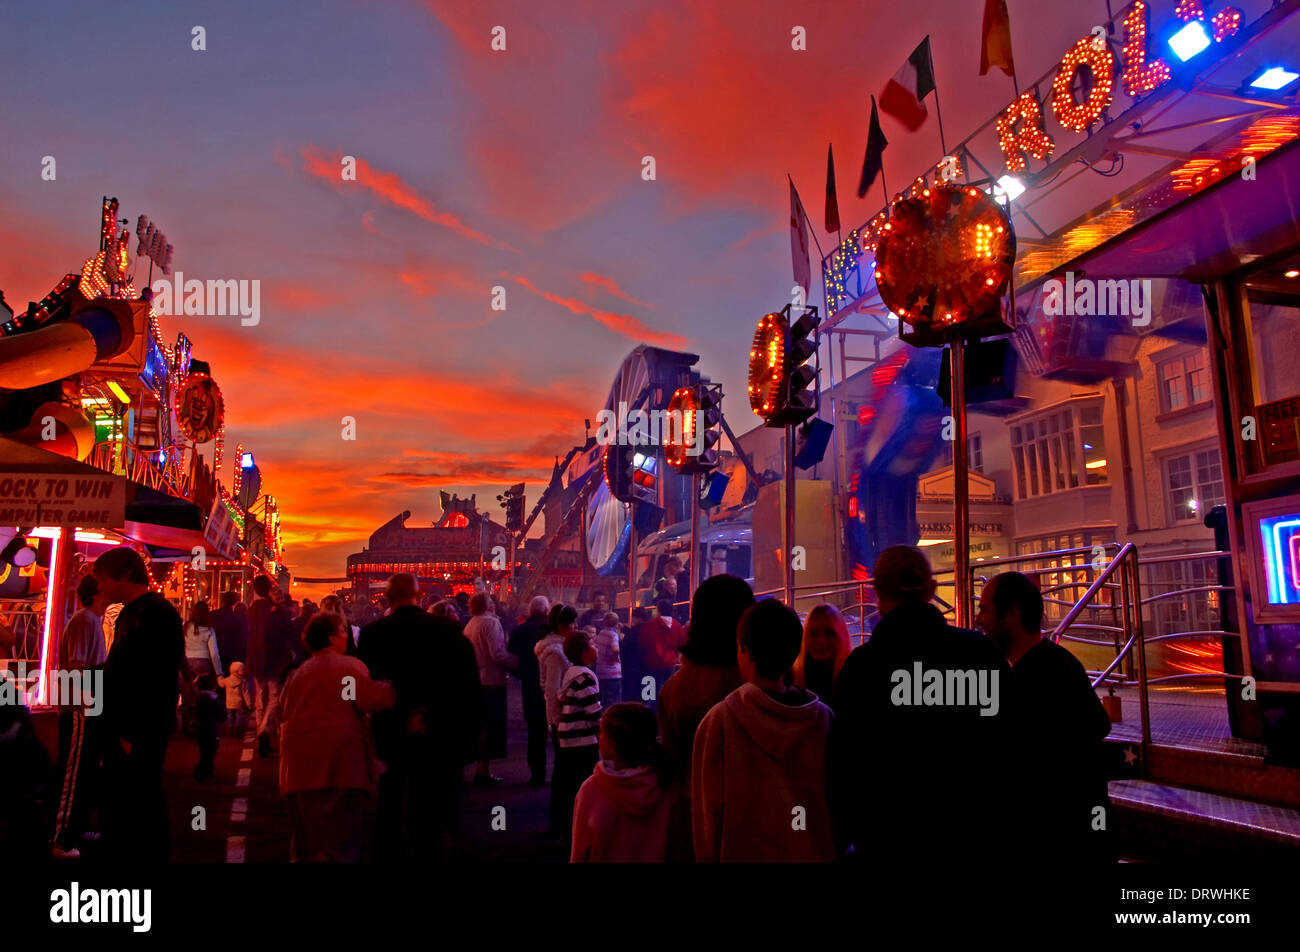 The Mop Fair visits Stratford upon Avon in October, with fairground rides taking over the town centre streets - Stock Image